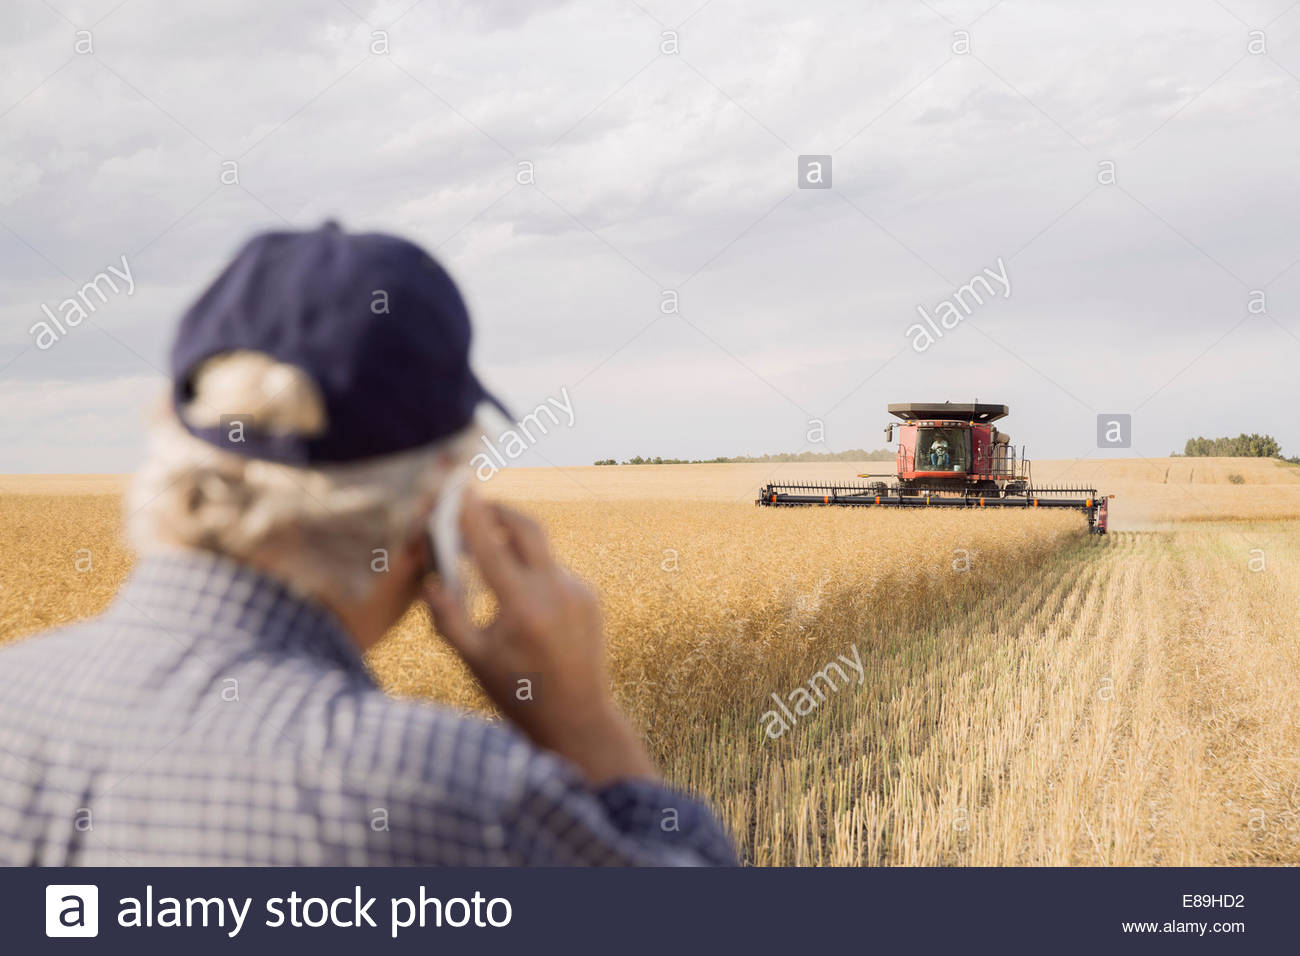 Farmer on cell phone watching combine harvester Stock Photo